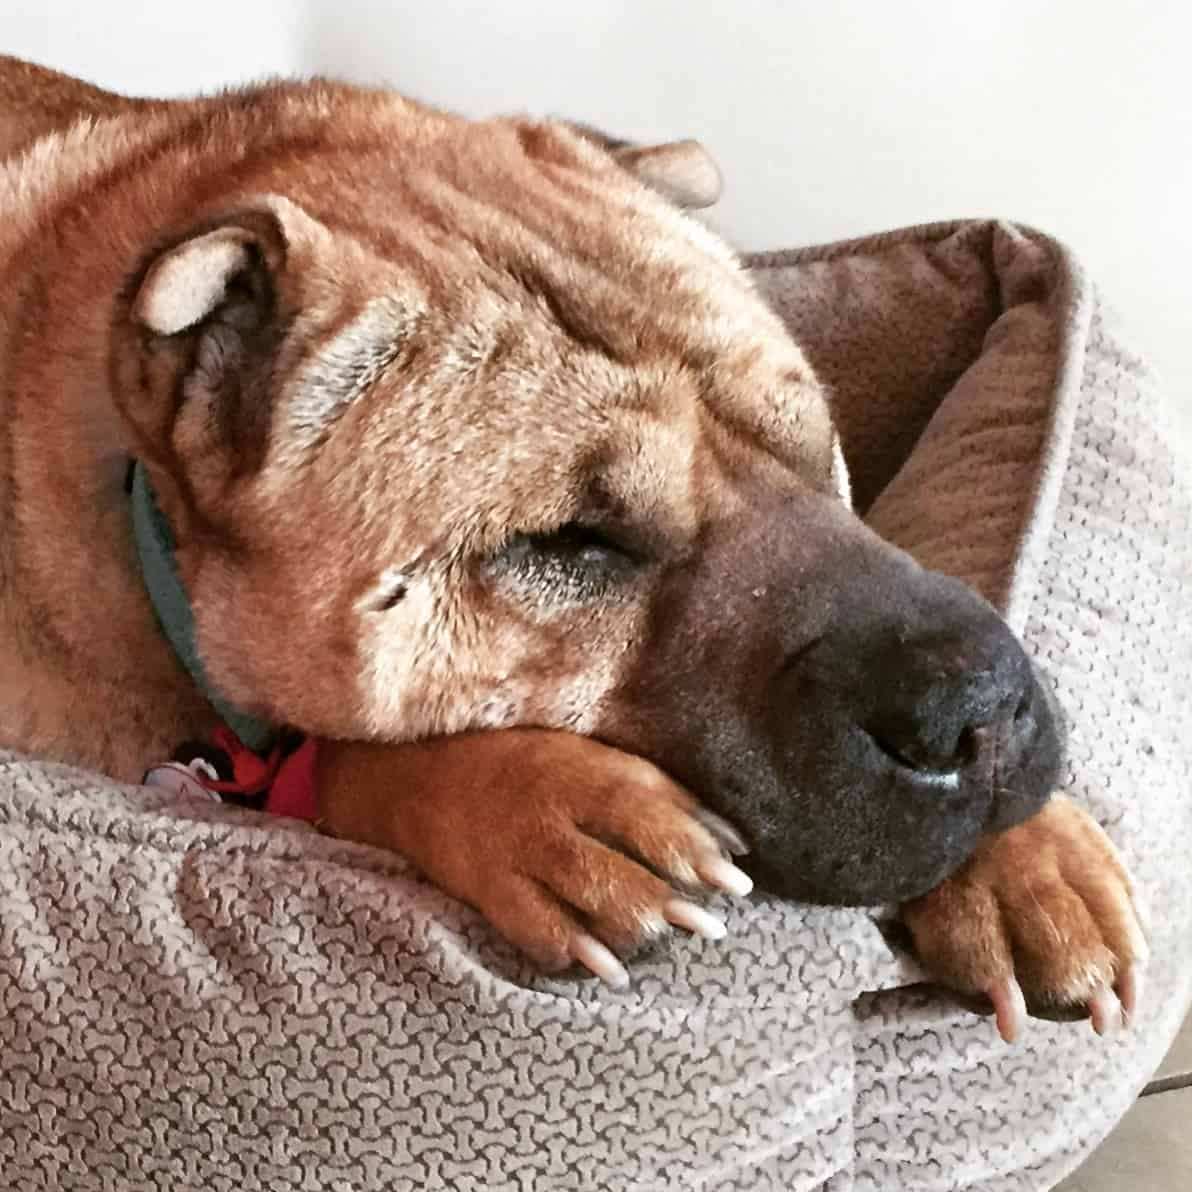 Ty the Shar-pei from GoPetFriendly.com laying in his bed with his paws under his chin